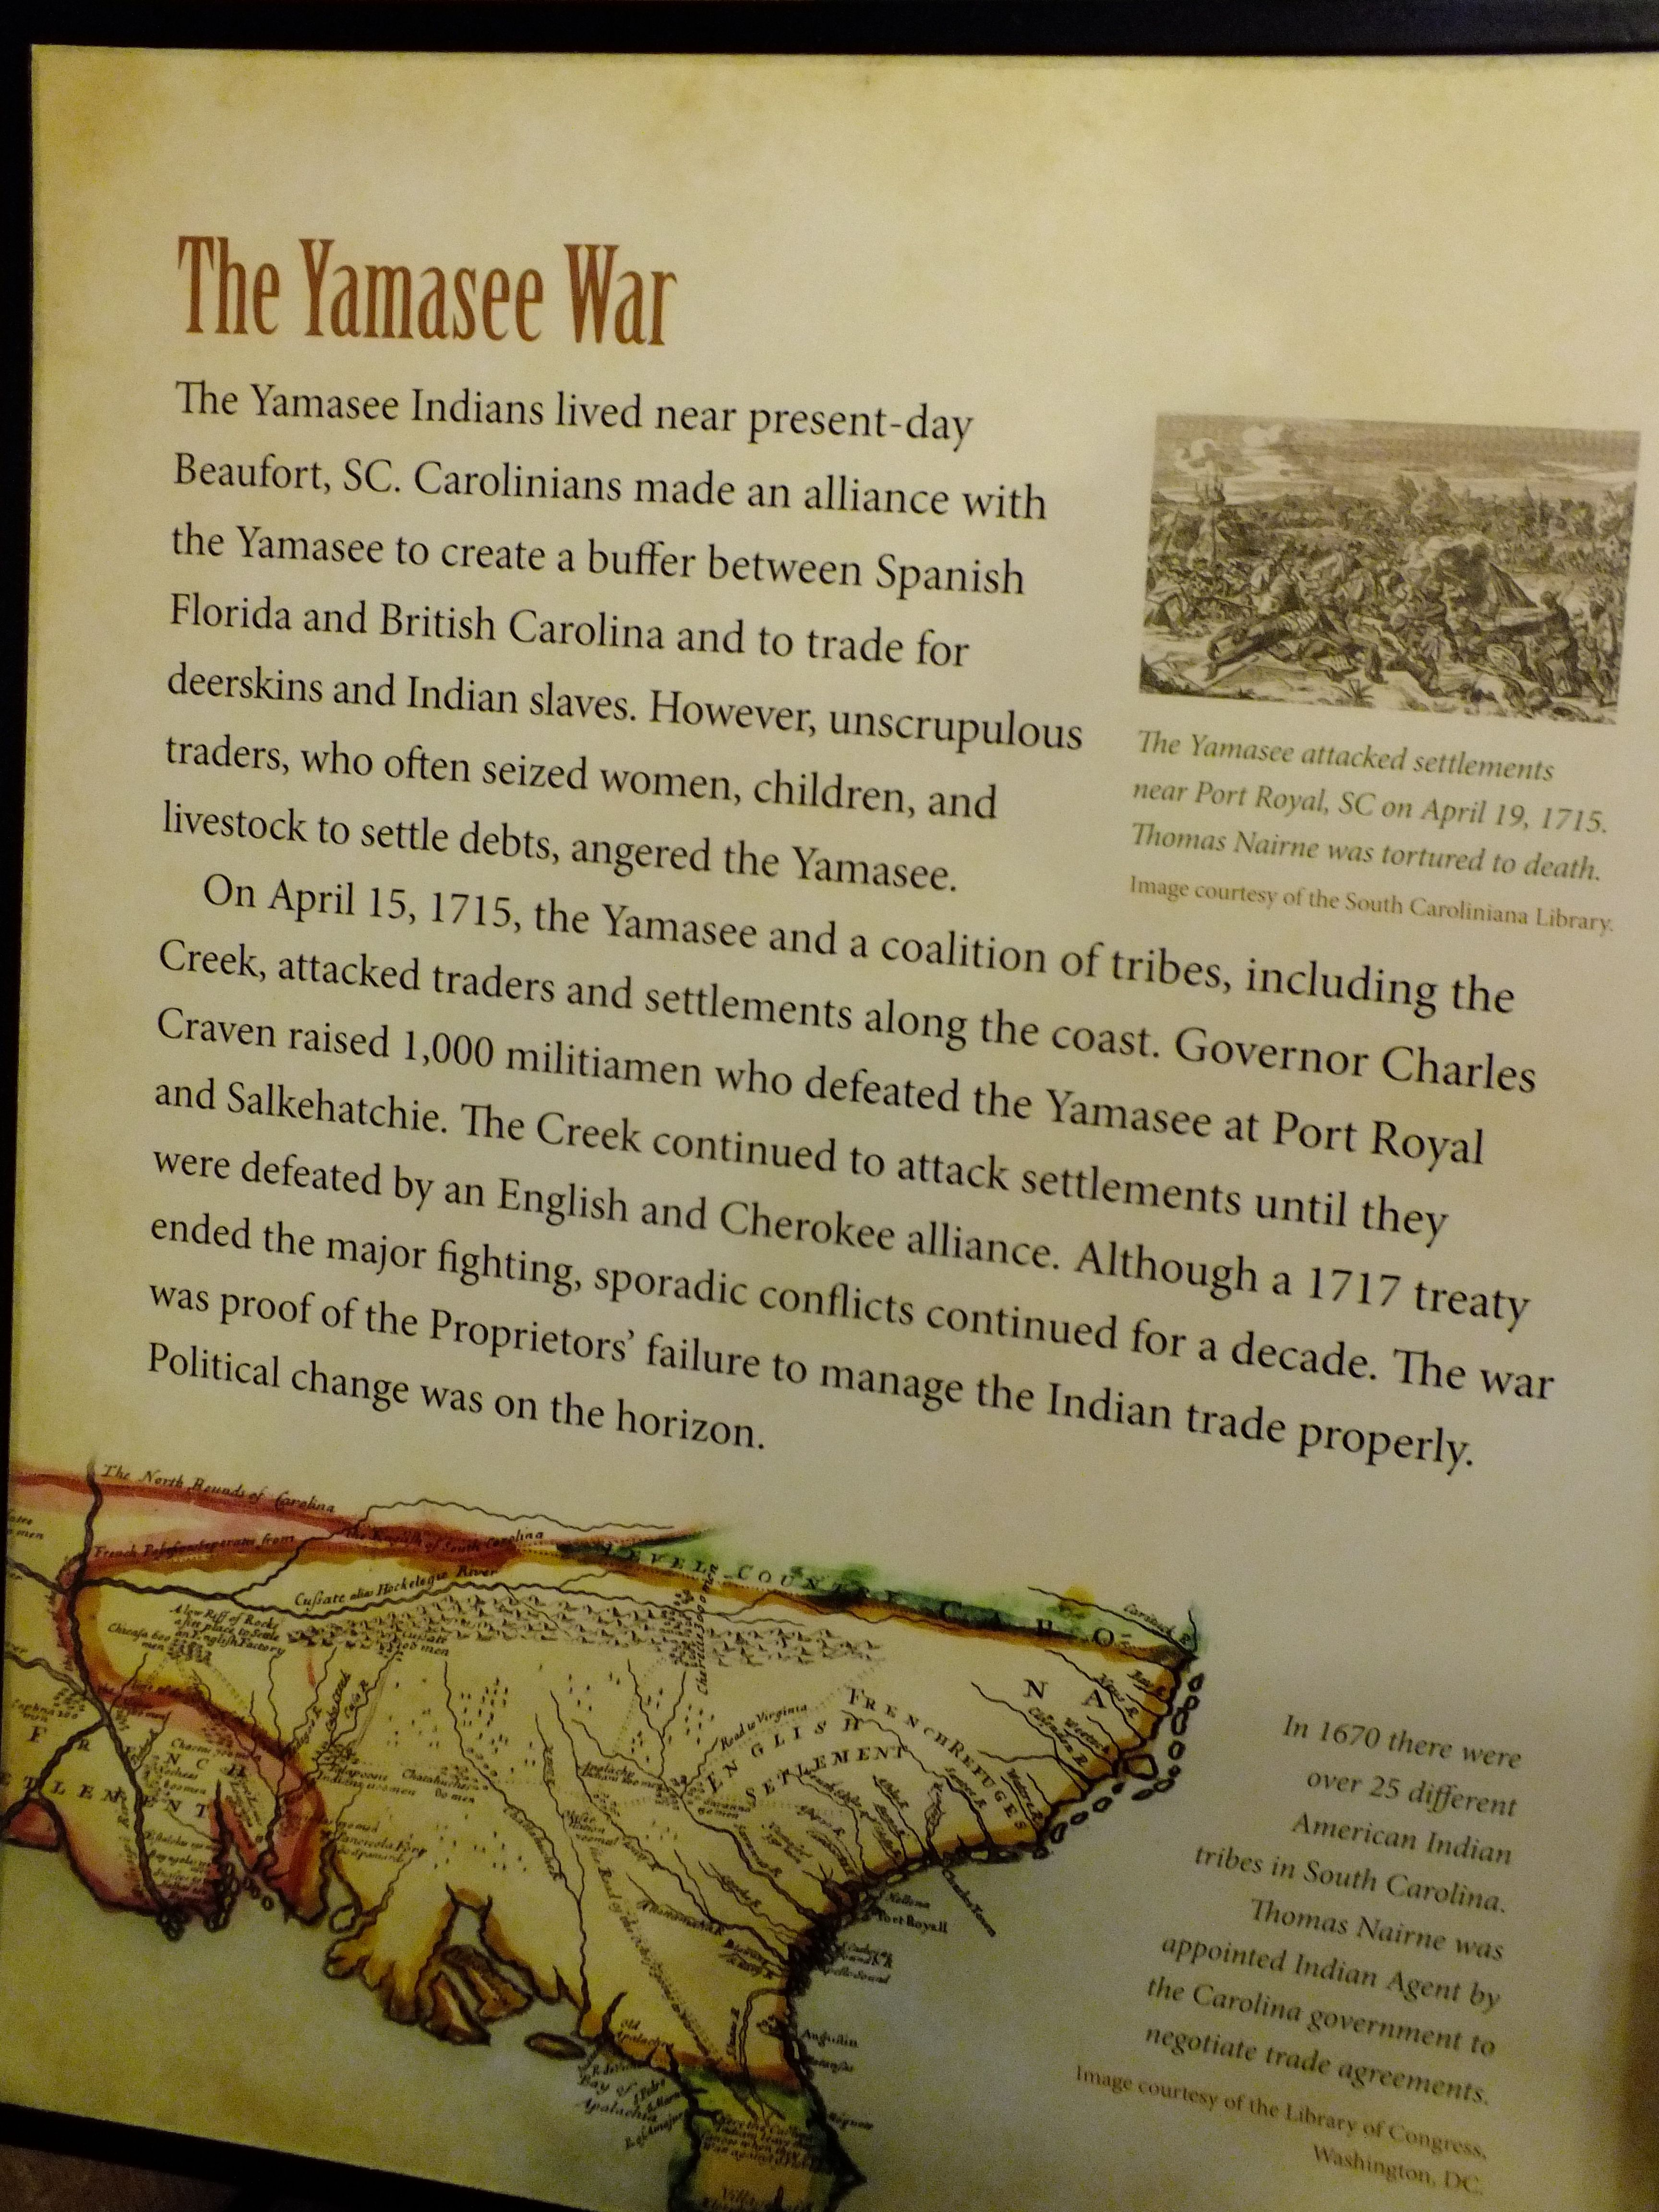 Information about the Yamasee War on display